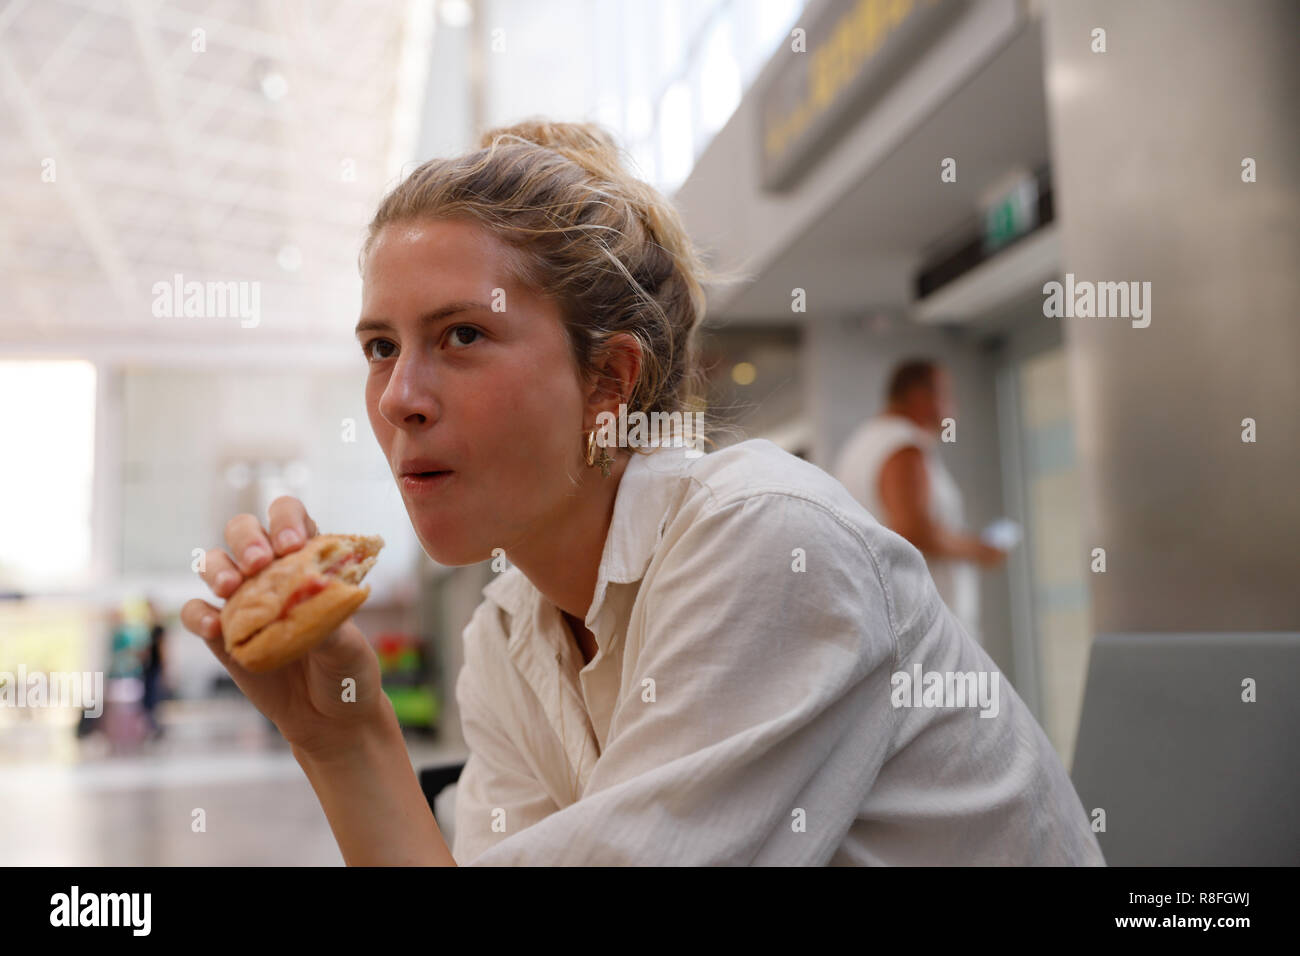 Young woman, authentic, natural, unplugged, waiting for her flight at the airport of Tenerife while eating a bun. - Stock Image